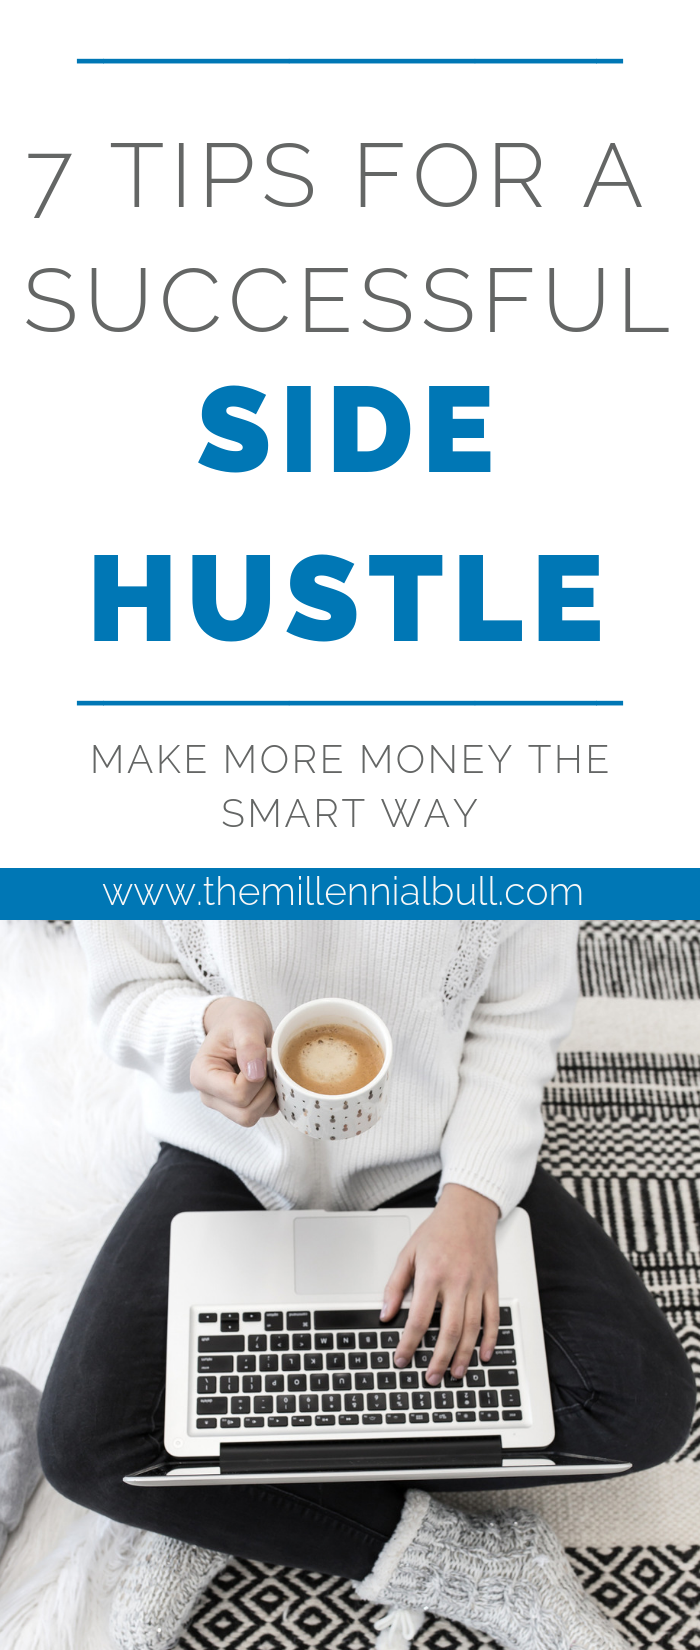 successful side hustle pin 002 - 7 Tips For A Successful Side Hustle: Make Extra Cash The Smart Way